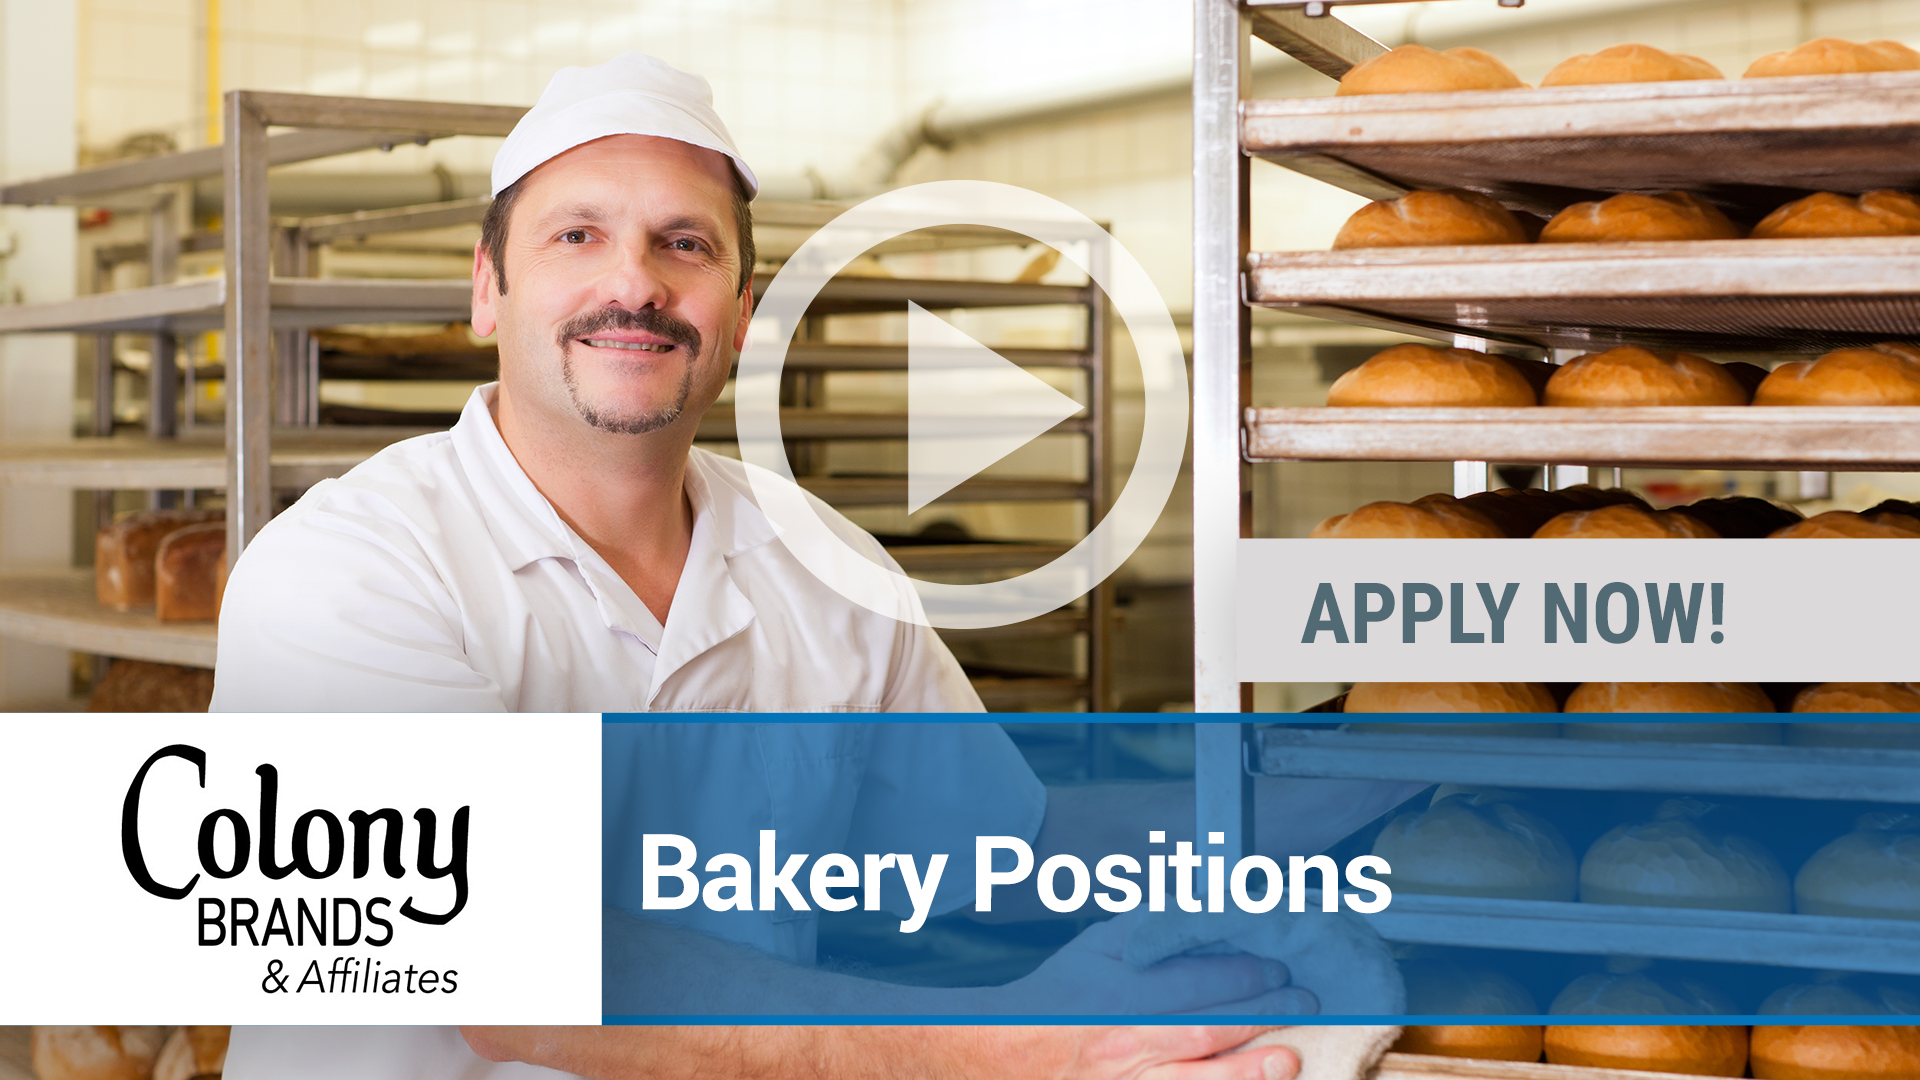 Watch our careers video for available job opening Bakery Positions in Monroe, WI